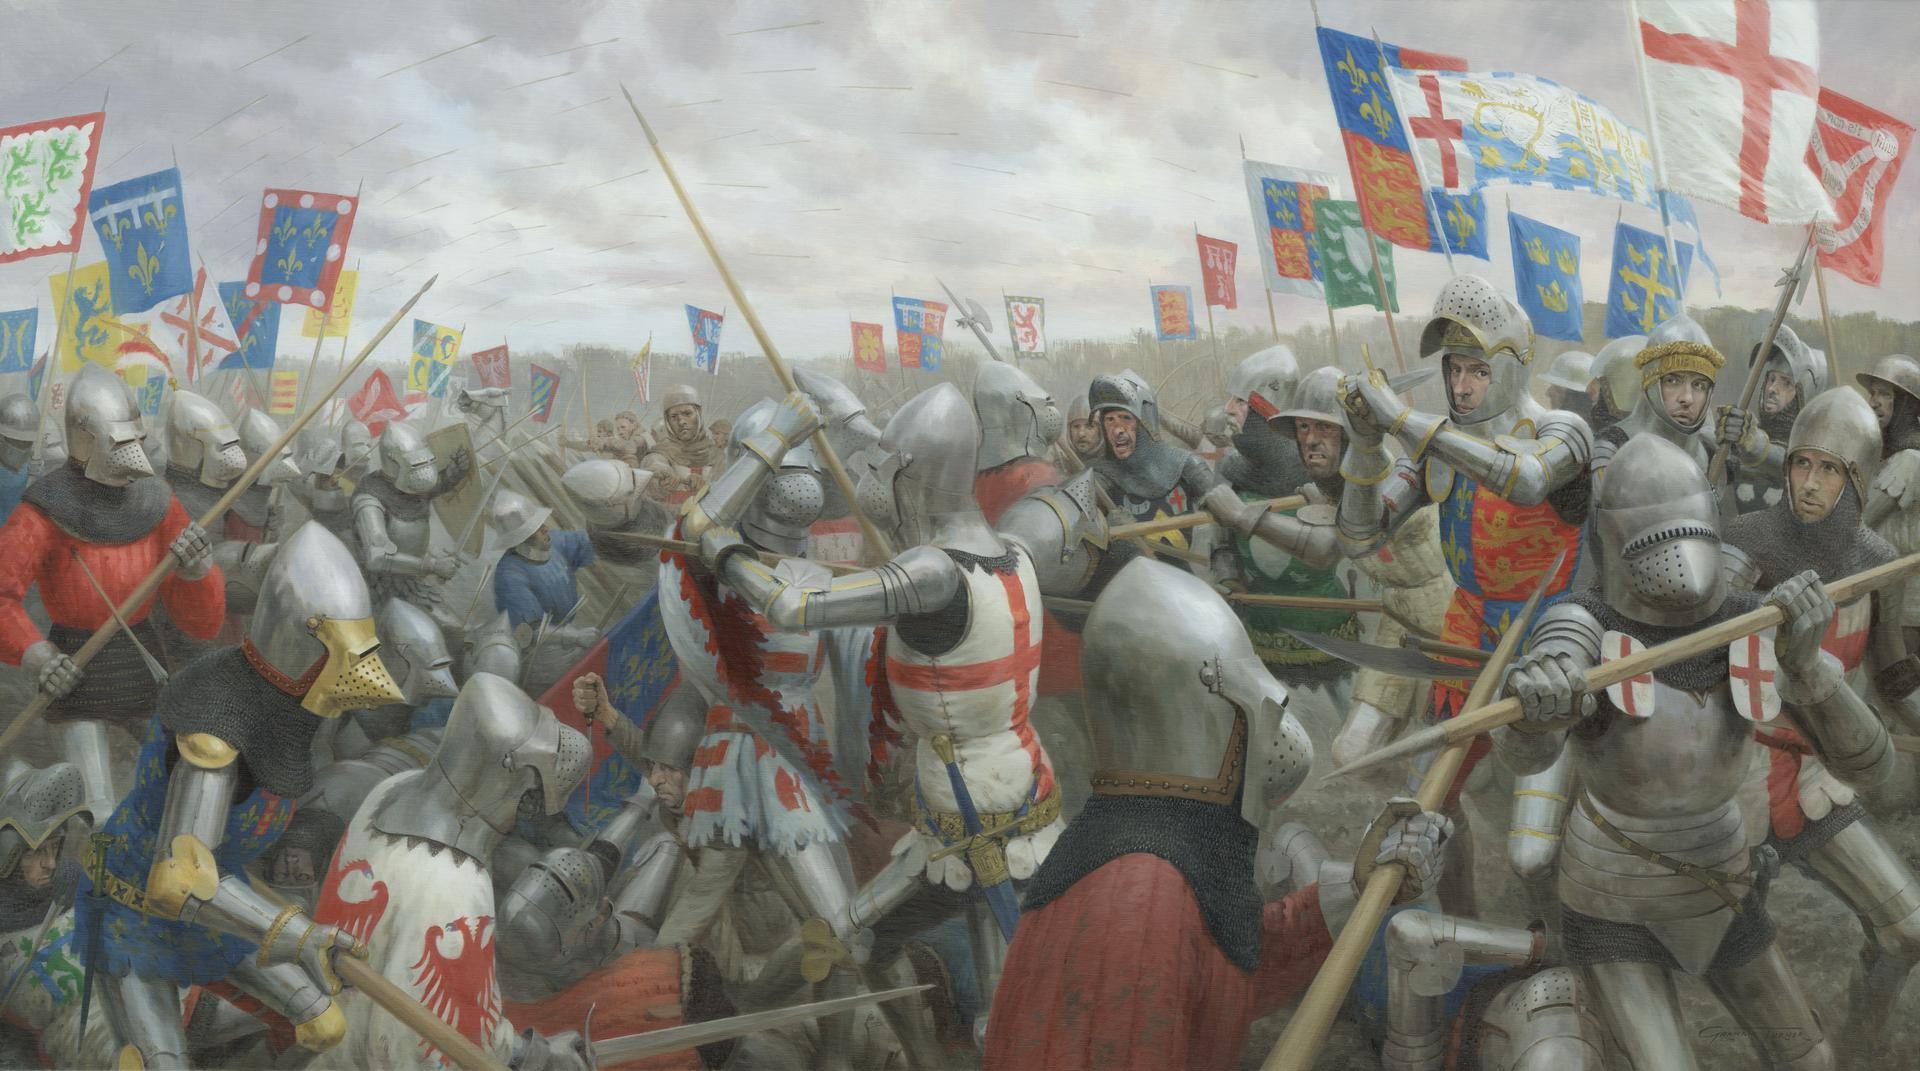 Painting - The Battle of Agincourt